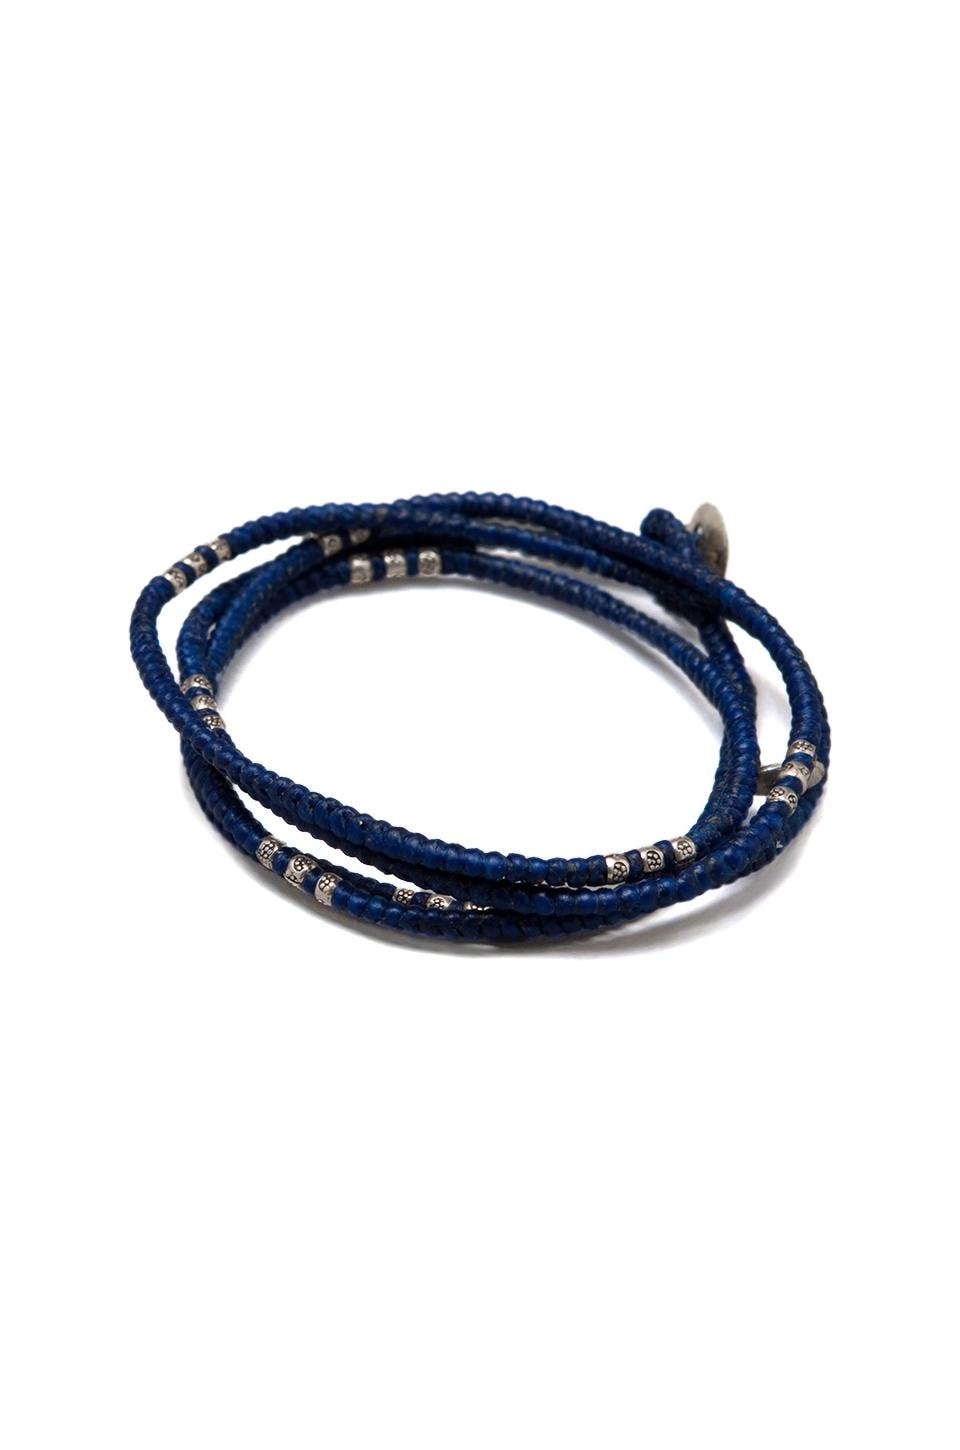 M.Cohen Wrap Bracelet in Blue